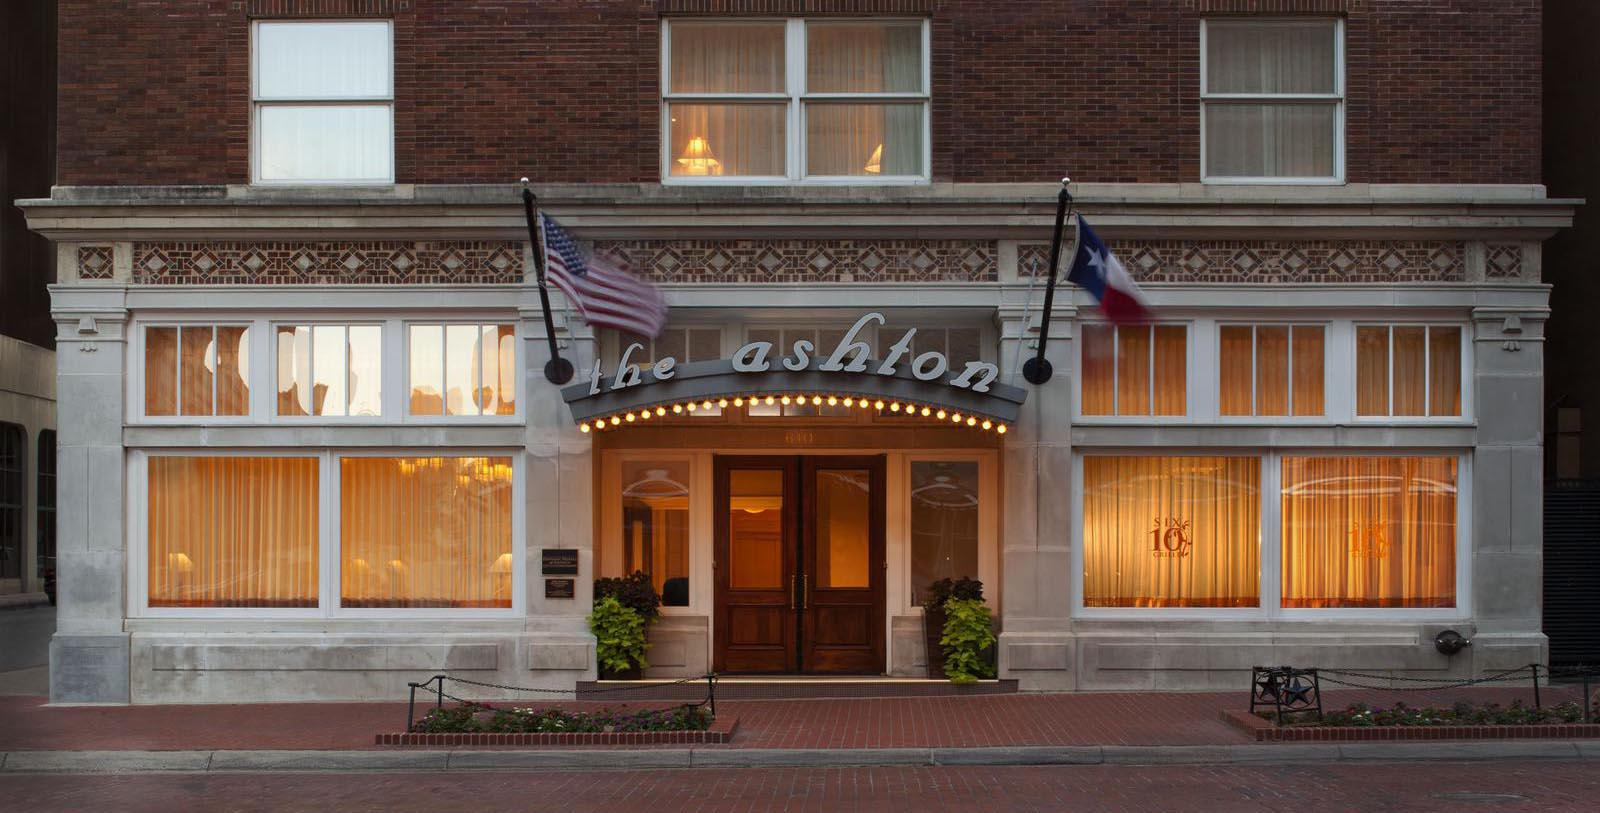 Image of Entrance The Ashton Hotel, 1915, Member of Historic Hotels of America, in Fort Worth, Texas, Special Offers, Discounted Rates, Families, Romantic Escape, Honeymoons, Anniversaries, Reunions